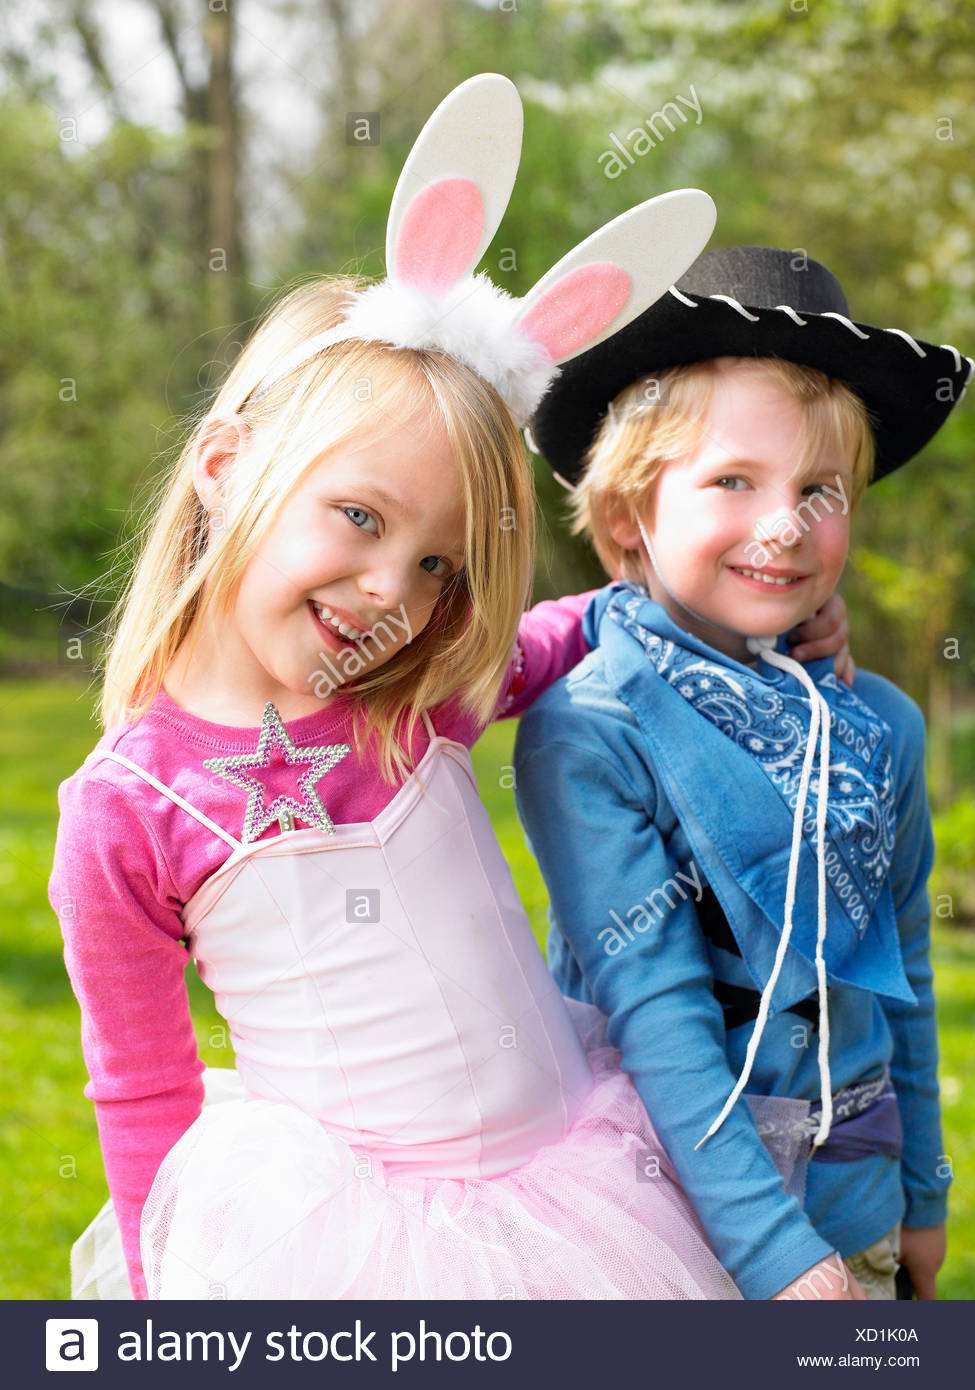 Boy and girl wearing costumes Stock Photo